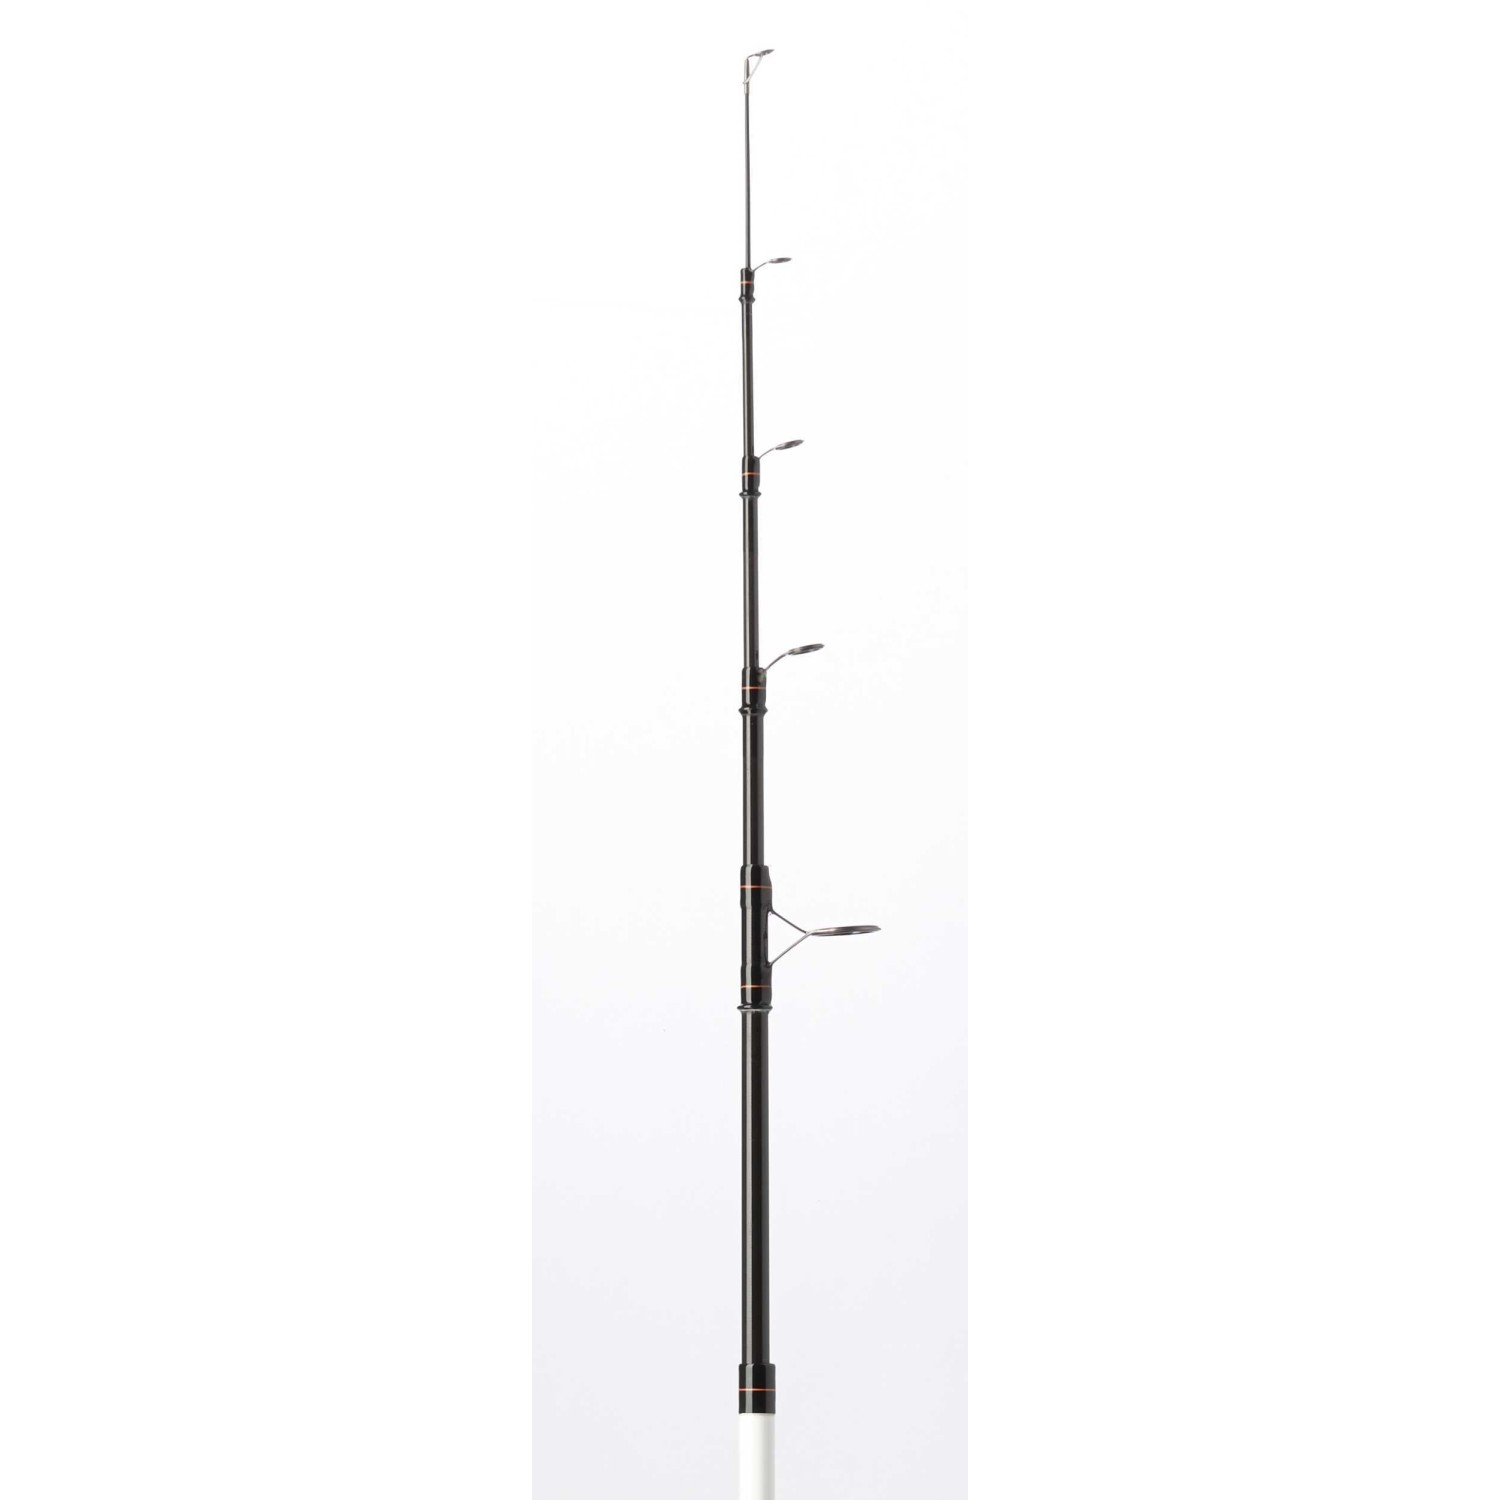 DAM Mad FCR 3.60m - 3.00lb Telescopic